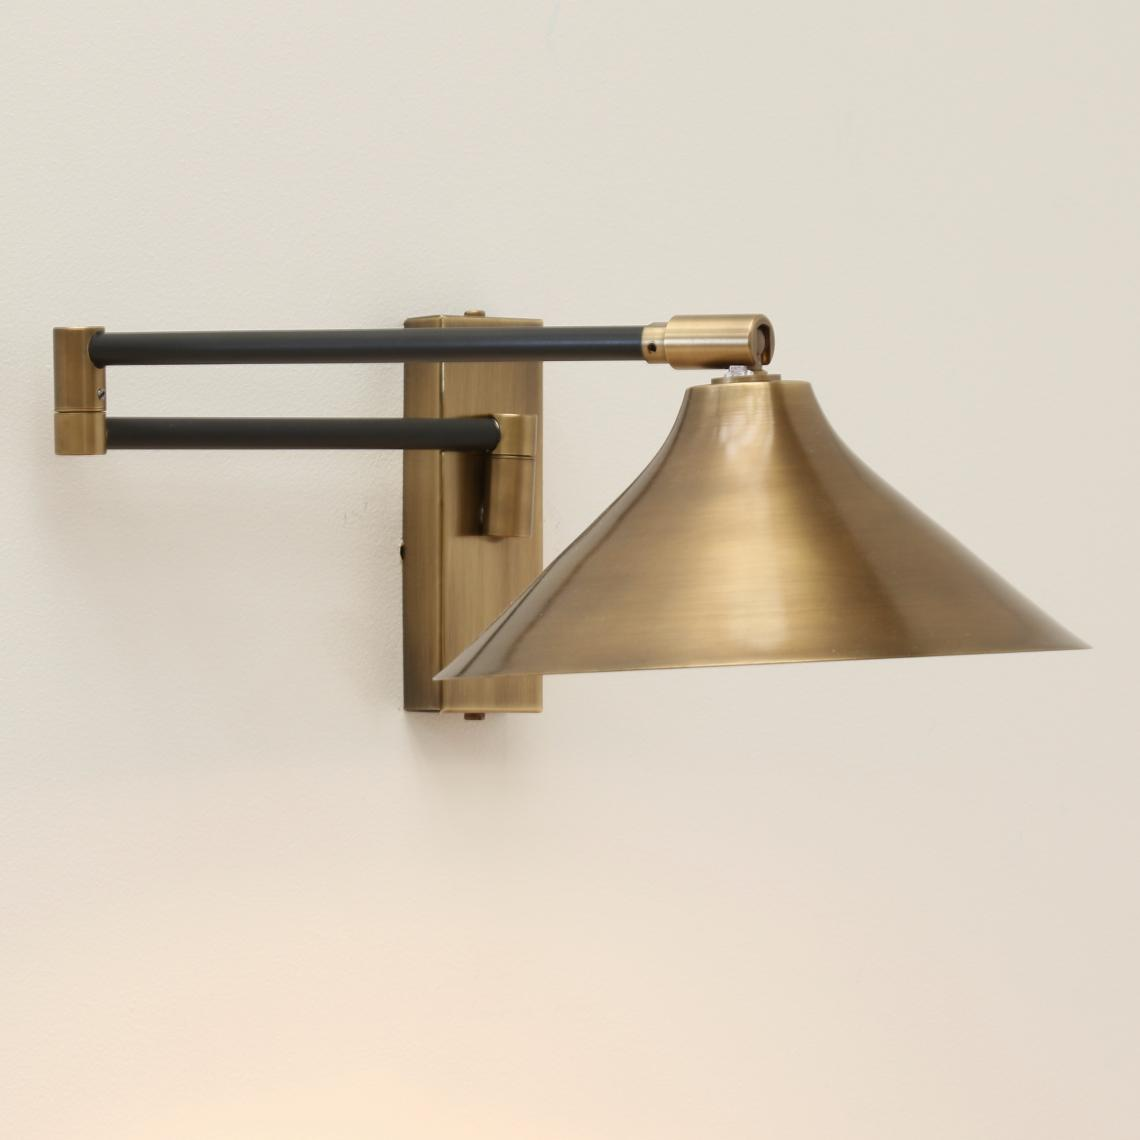 102-43 - French Wall Light // Flared Shade